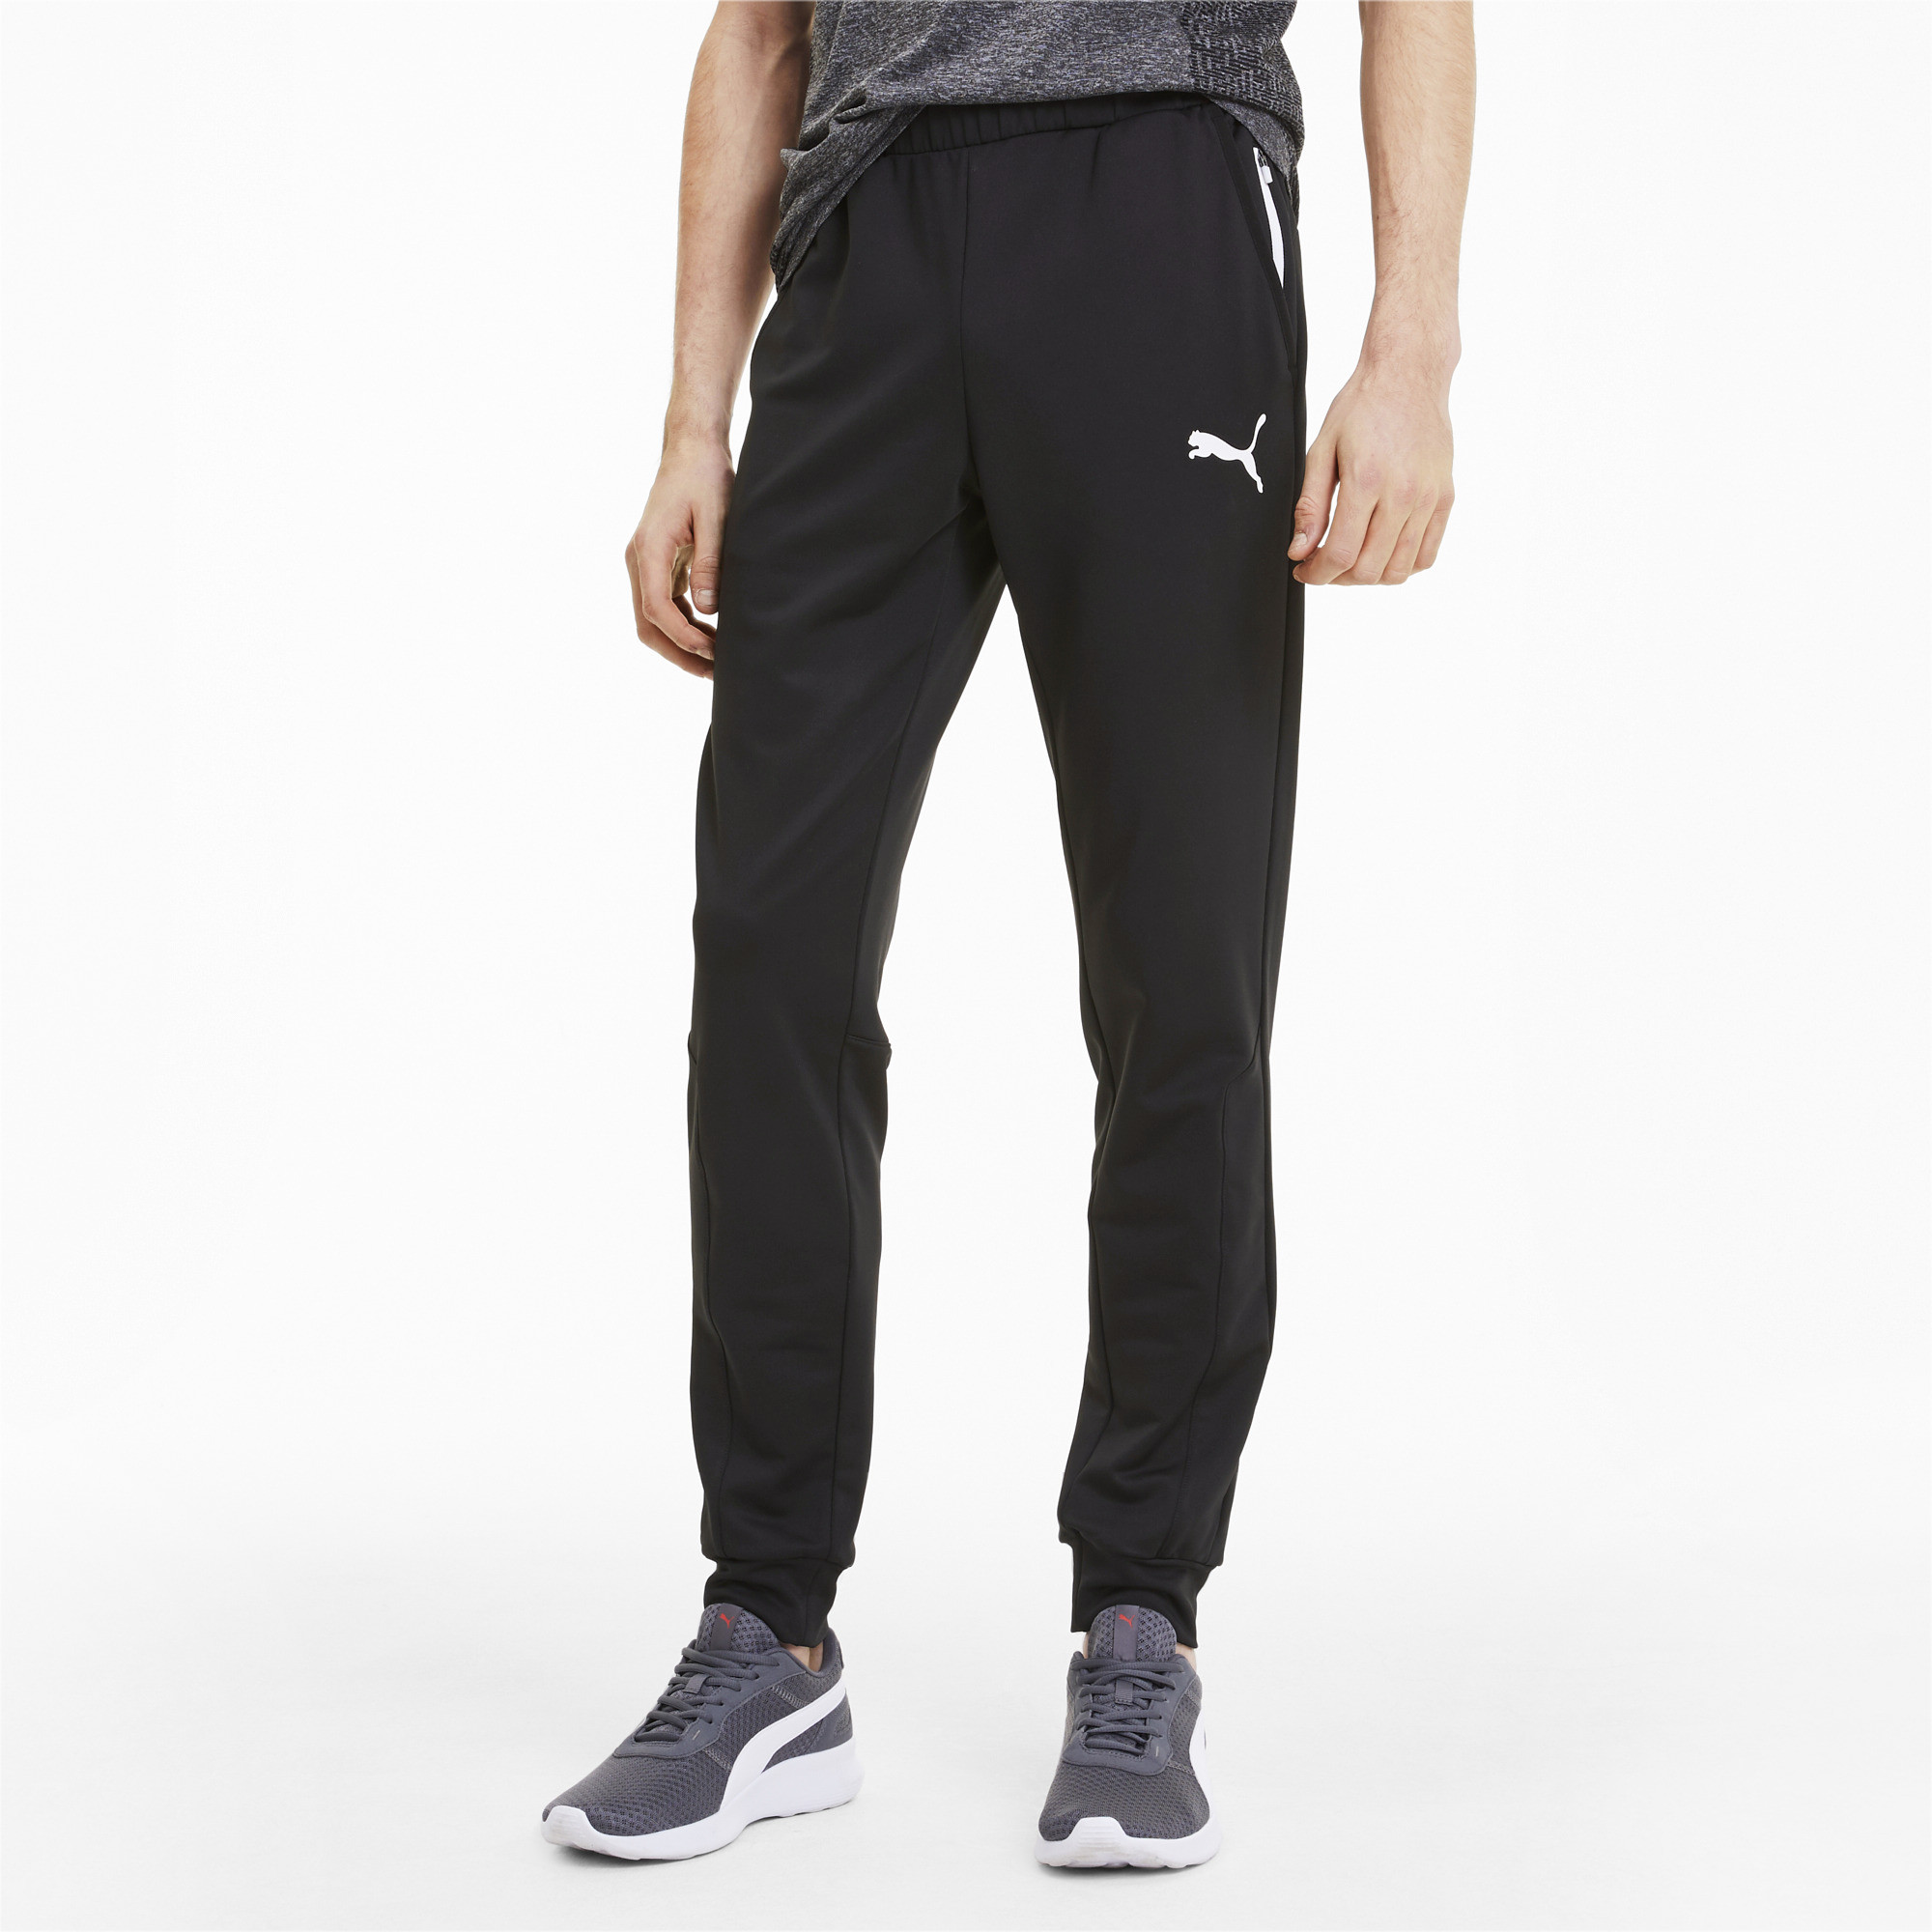 PUMA-RTG-Men-039-s-Knitted-Pants-Men-Knitted-Pants-Basics thumbnail 4